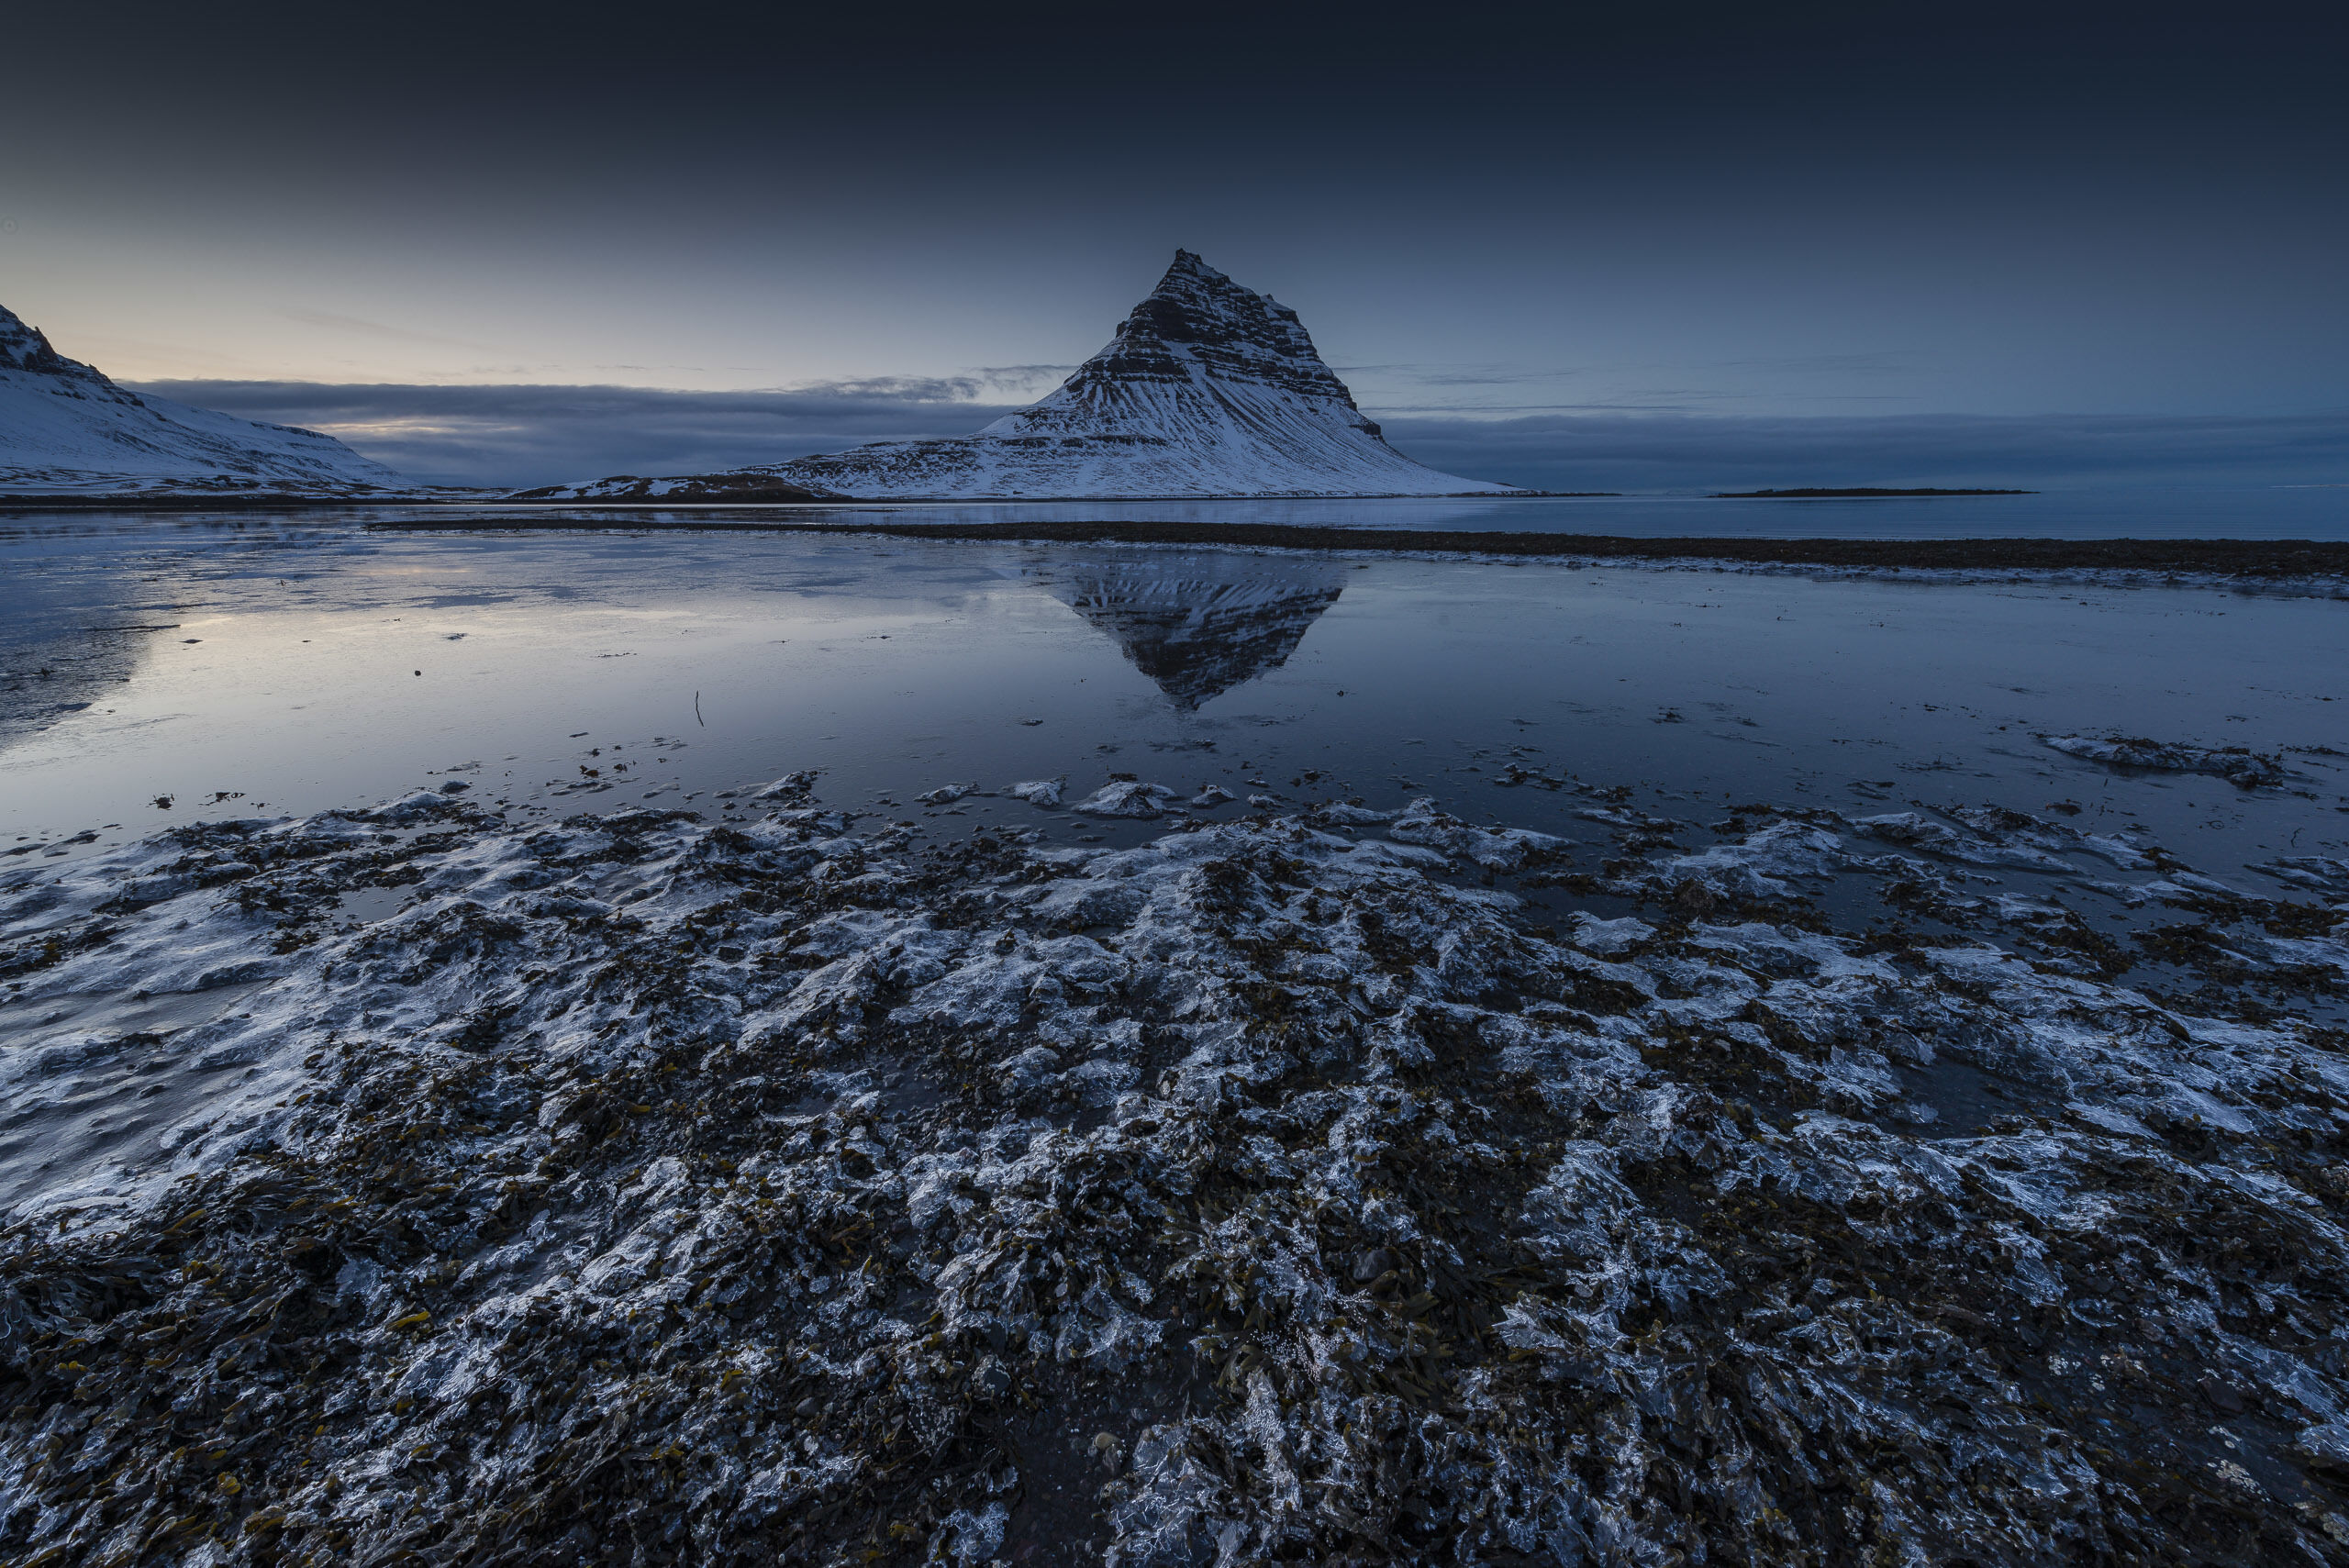 Kirkjufell Mountain and Ice on the beach, Iceland, photo © Jerry Young